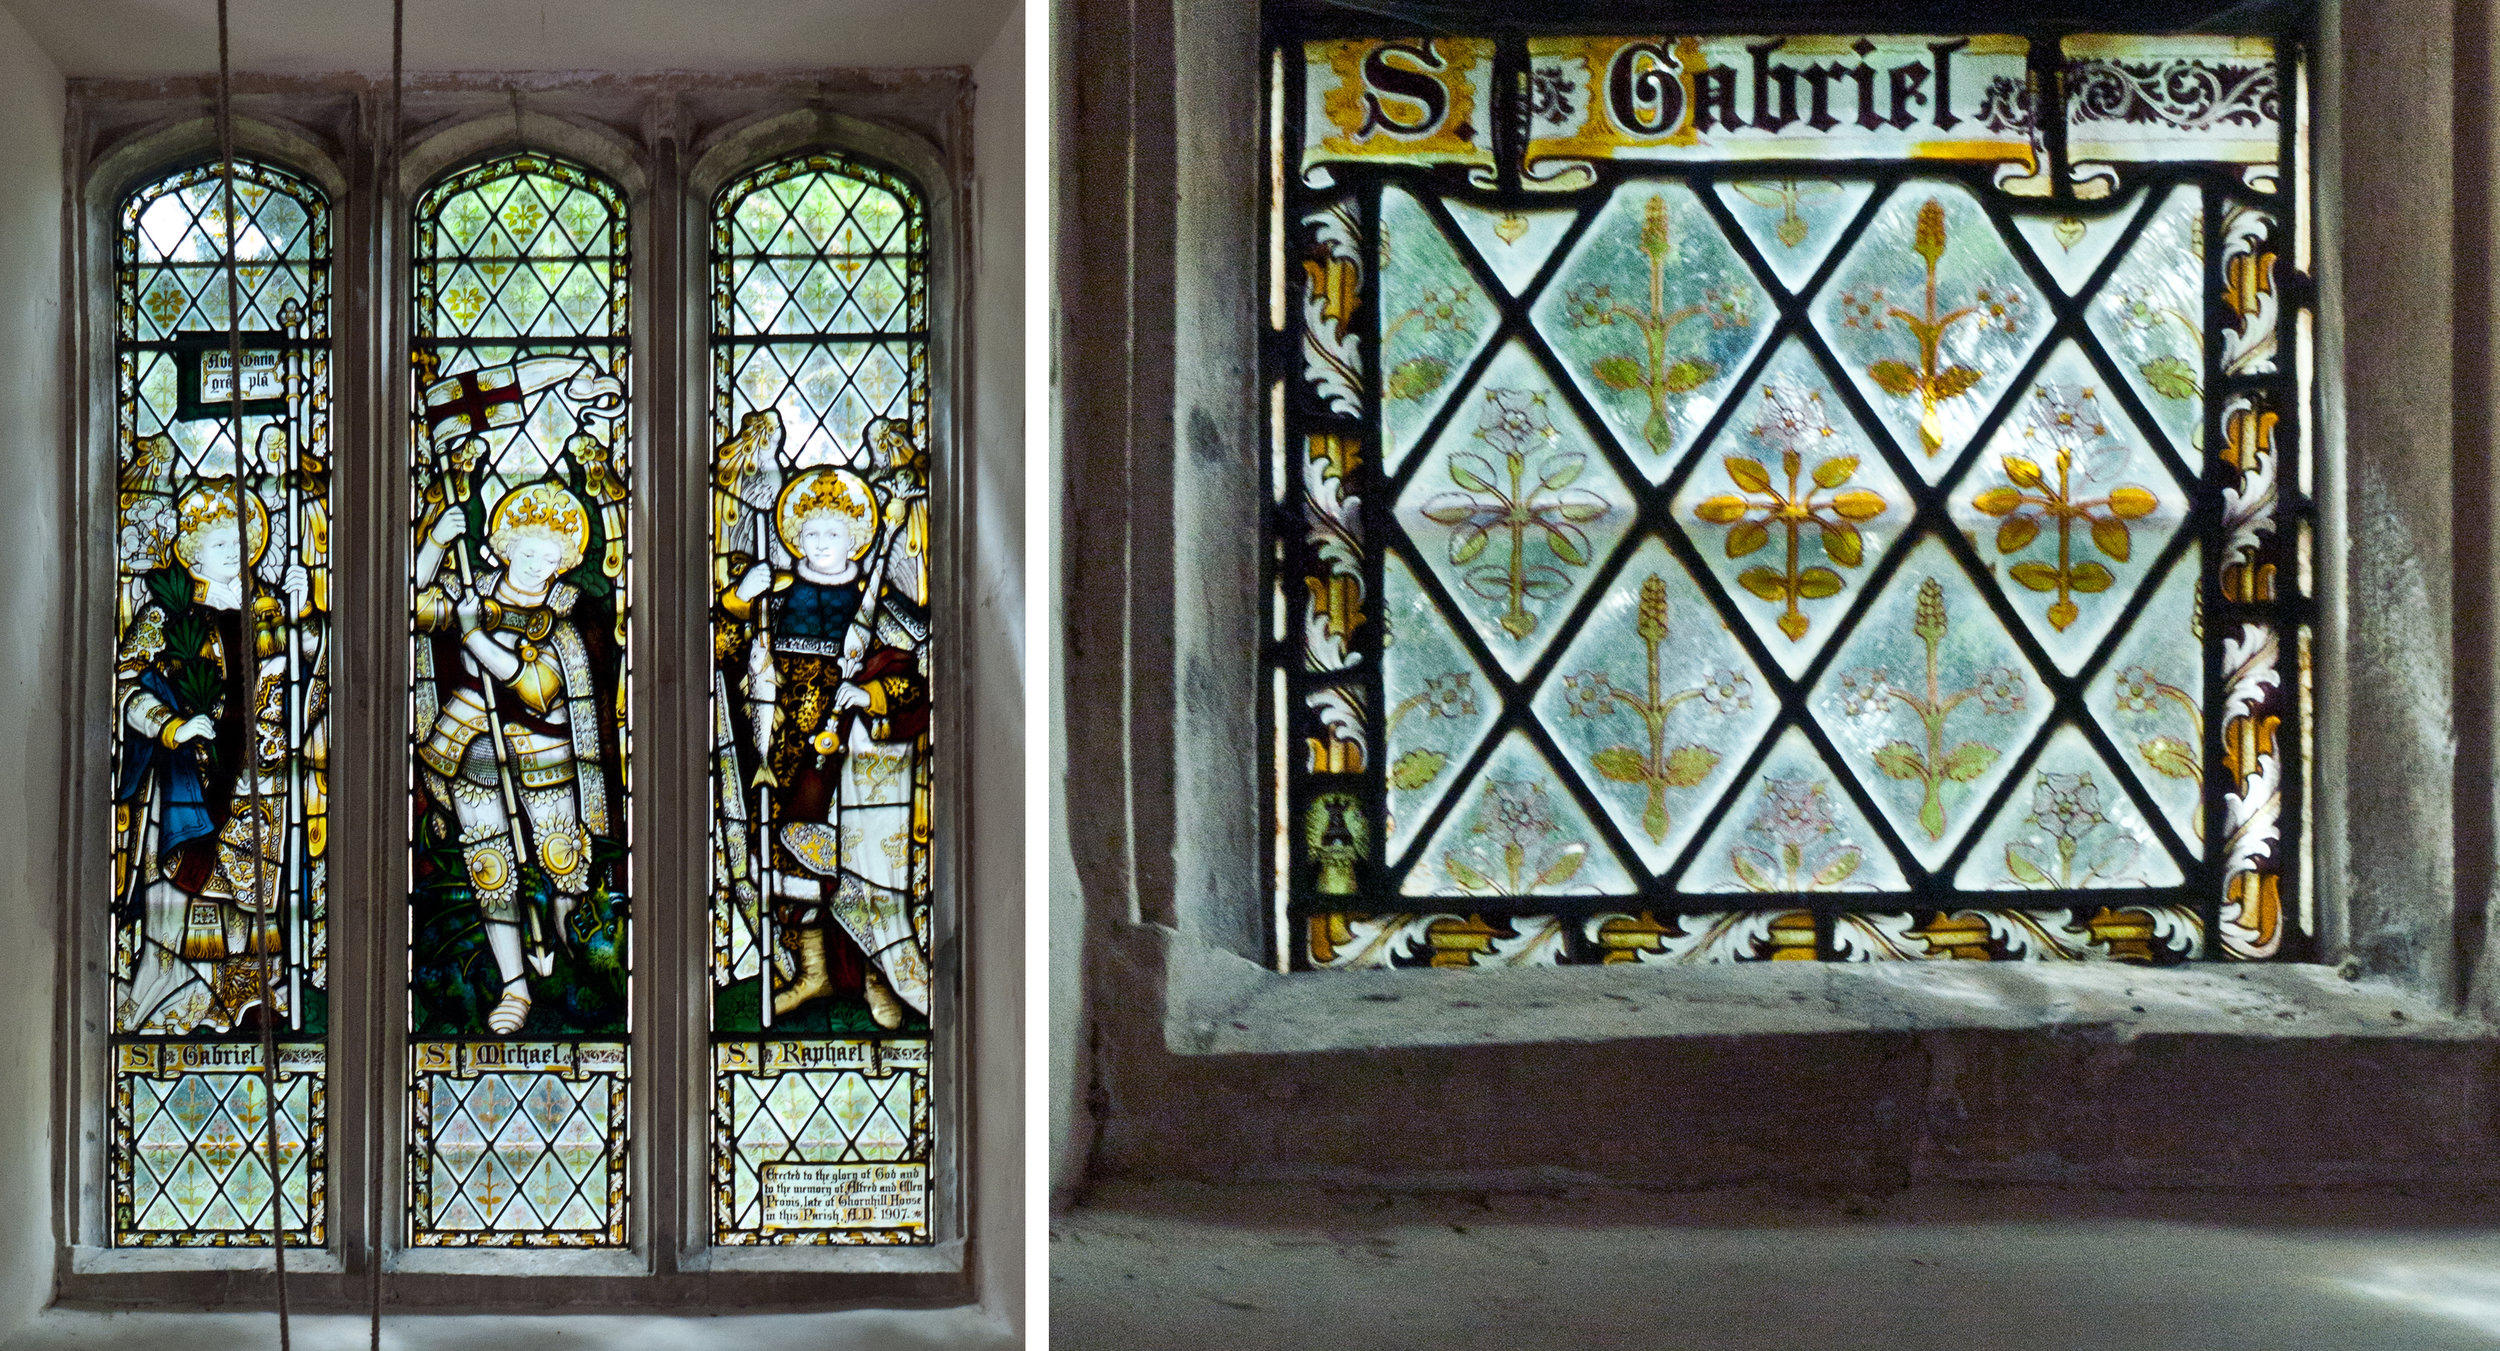 C.E. Kempe window and detail from bottom left panel with the identifying mark.